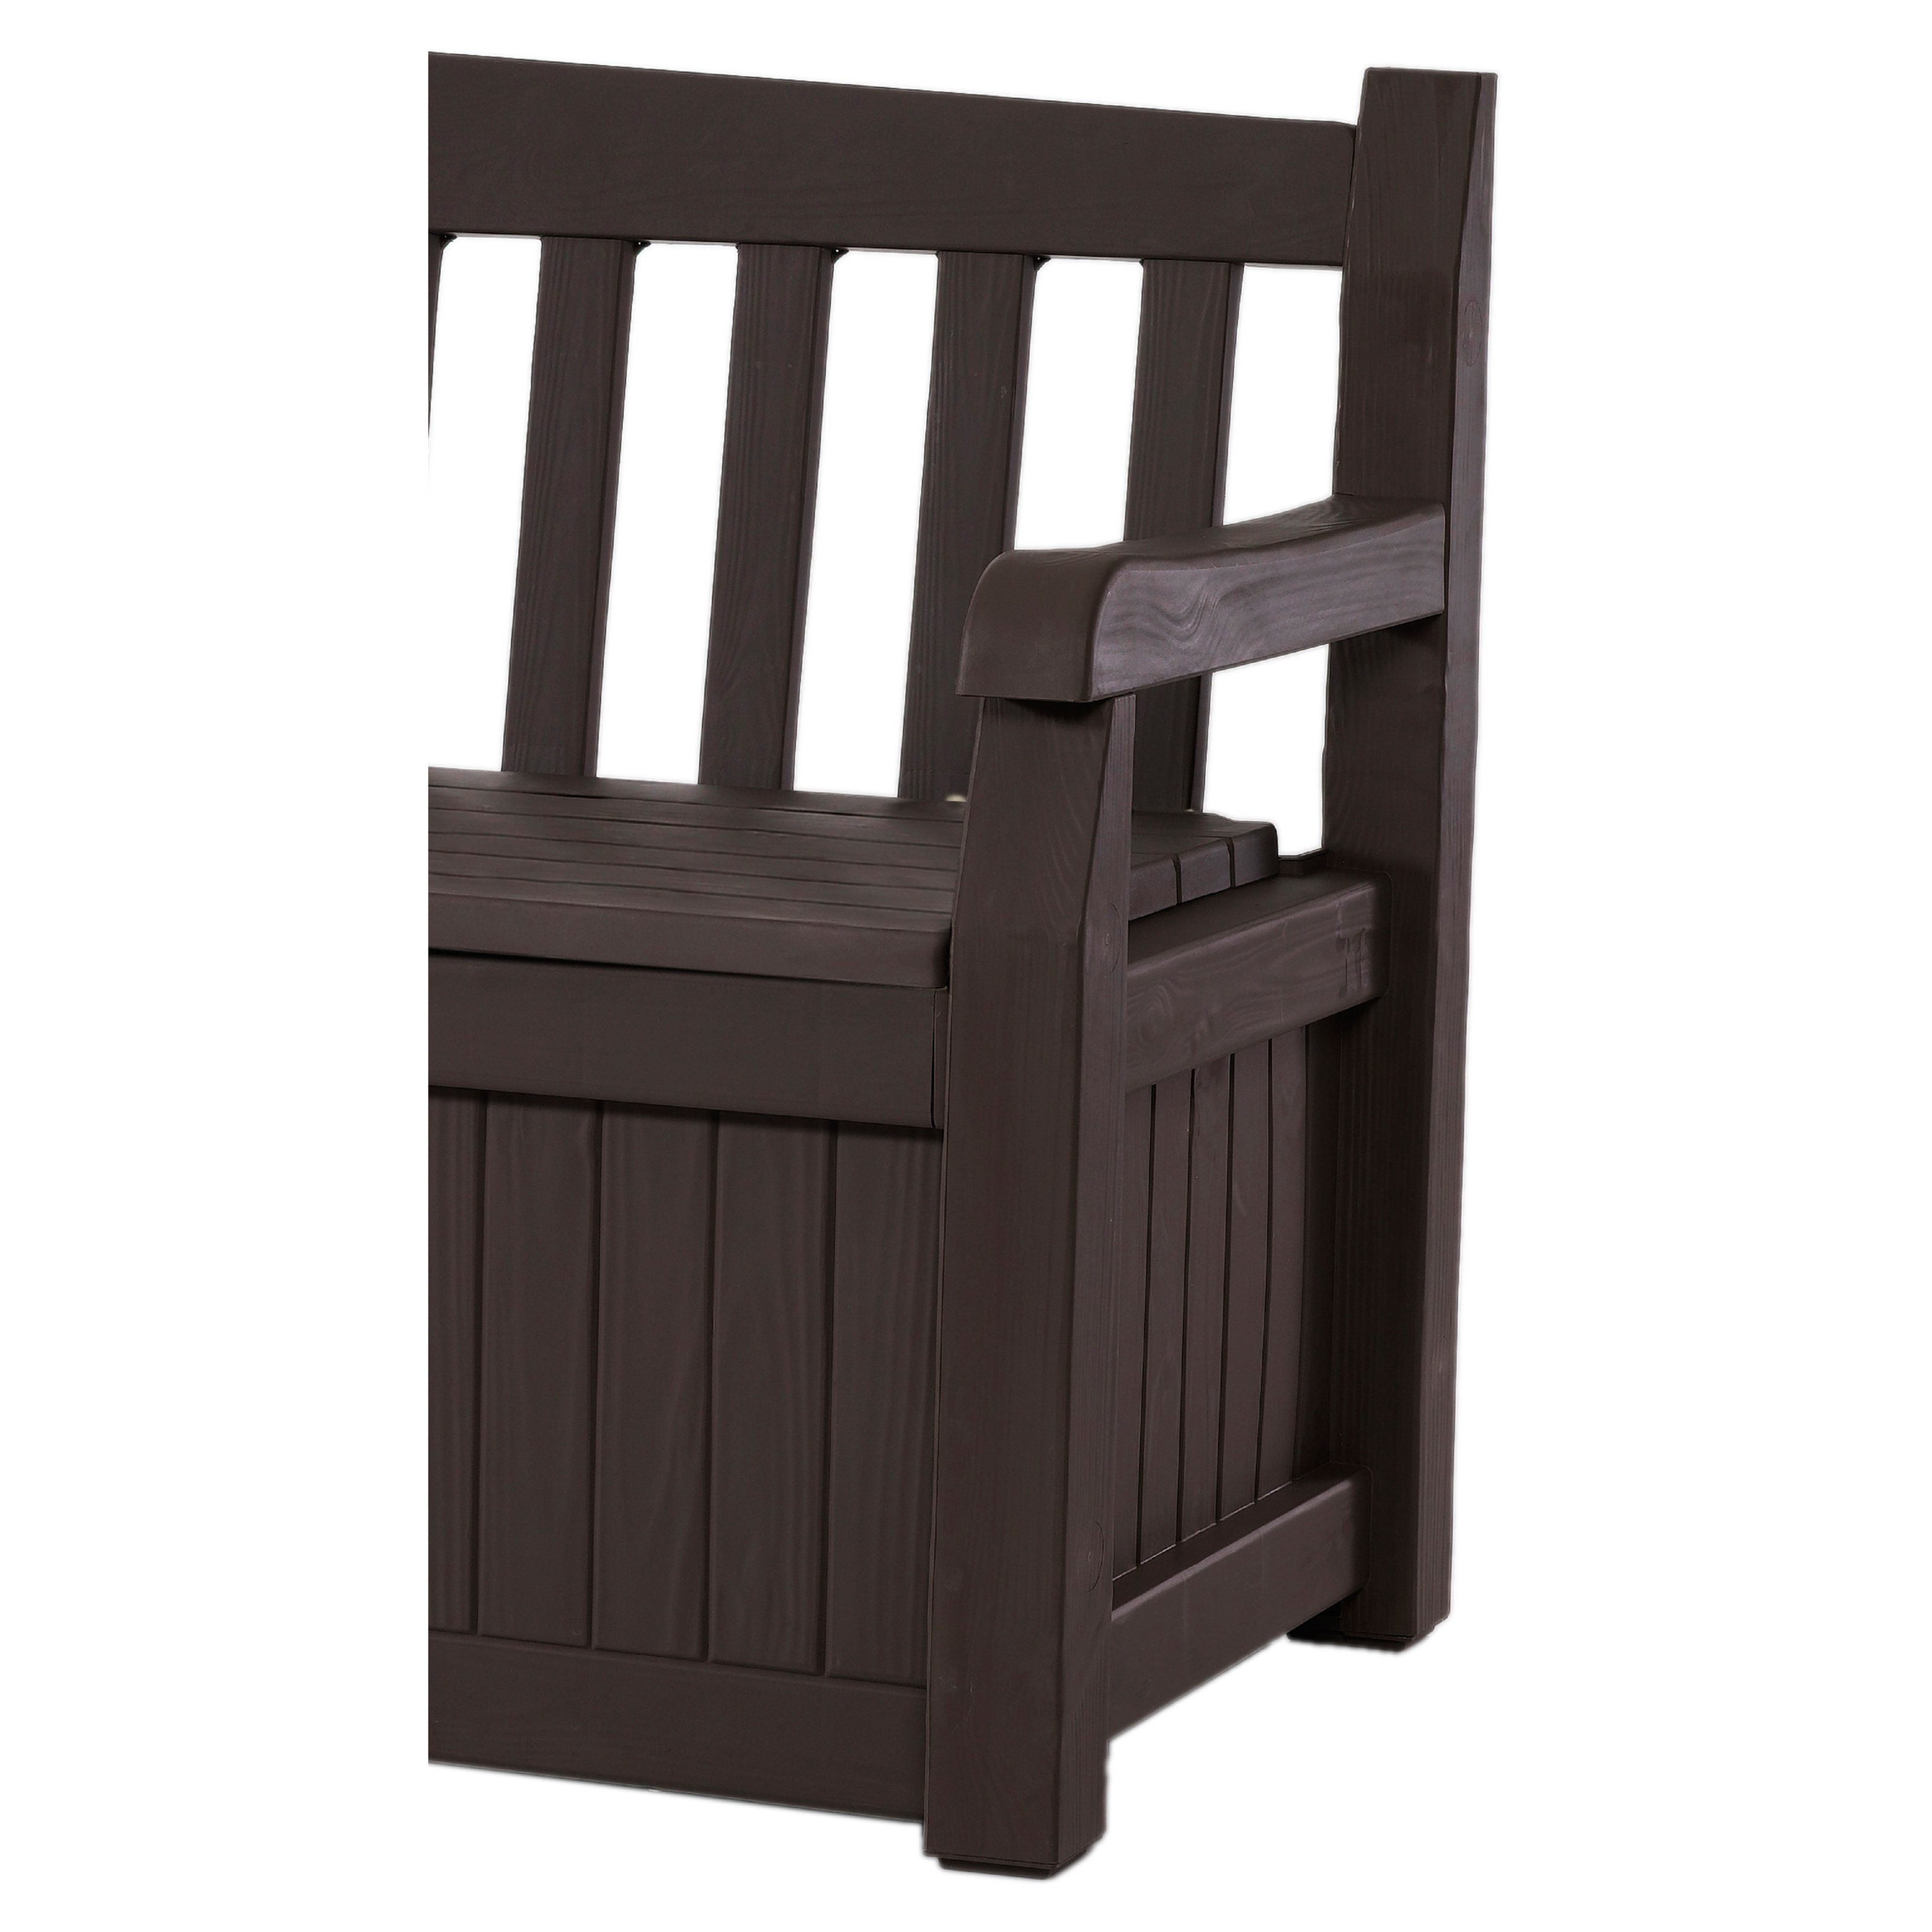 Keter Eden Outdoor Resin Storage Bench  All Weather Plastic Seating and  Storage  70 Gal  Brown   Walmart comKeter Eden Outdoor Resin Storage Bench  All Weather Plastic  . Eden Outdoor Living Round Rock. Home Design Ideas